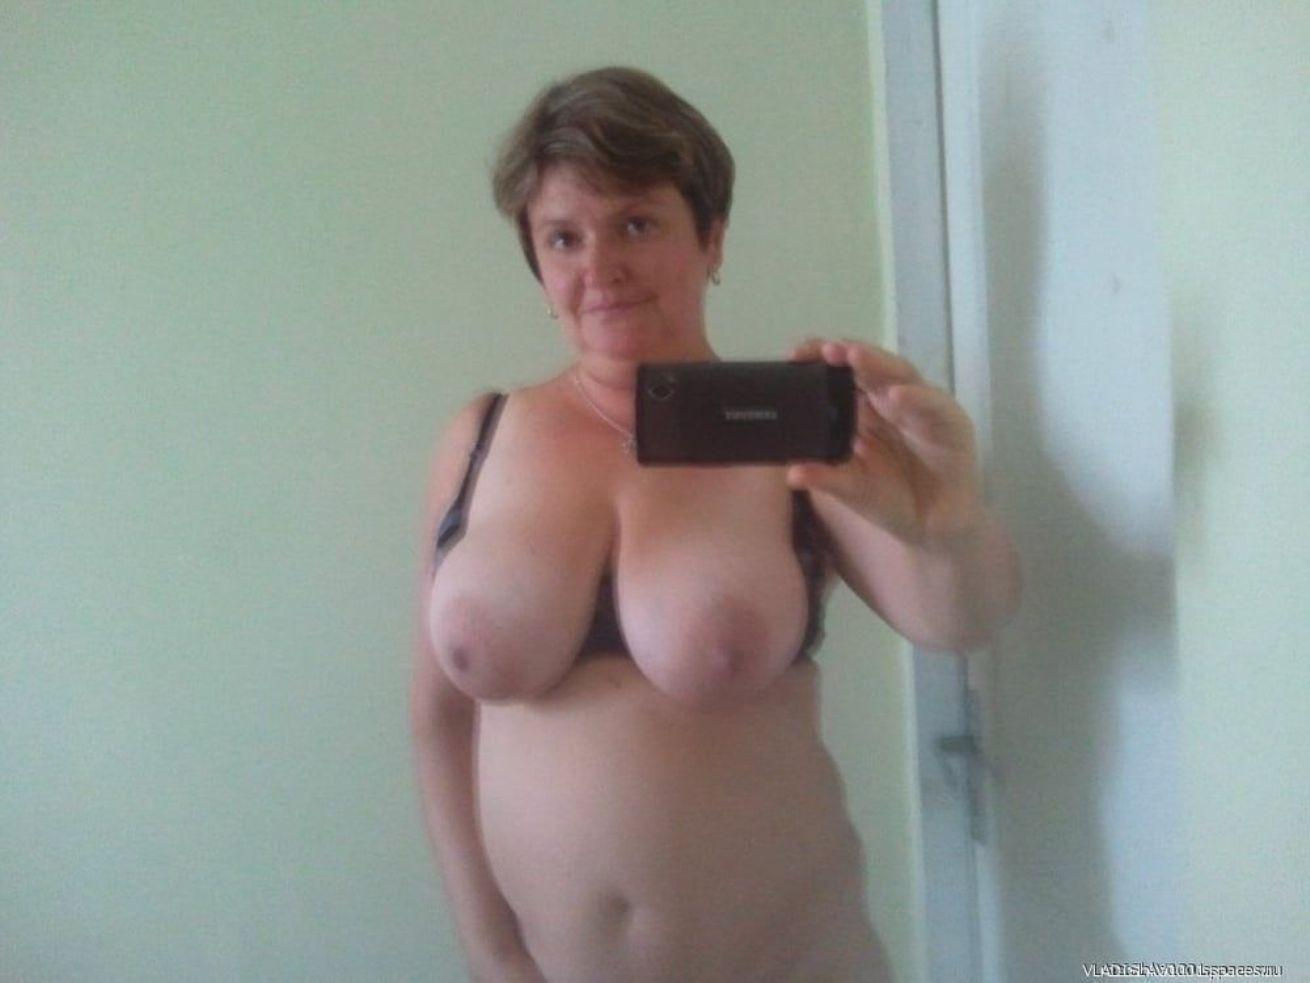 Brunette amateur mature exposes her saggy tits in mirror for selfie